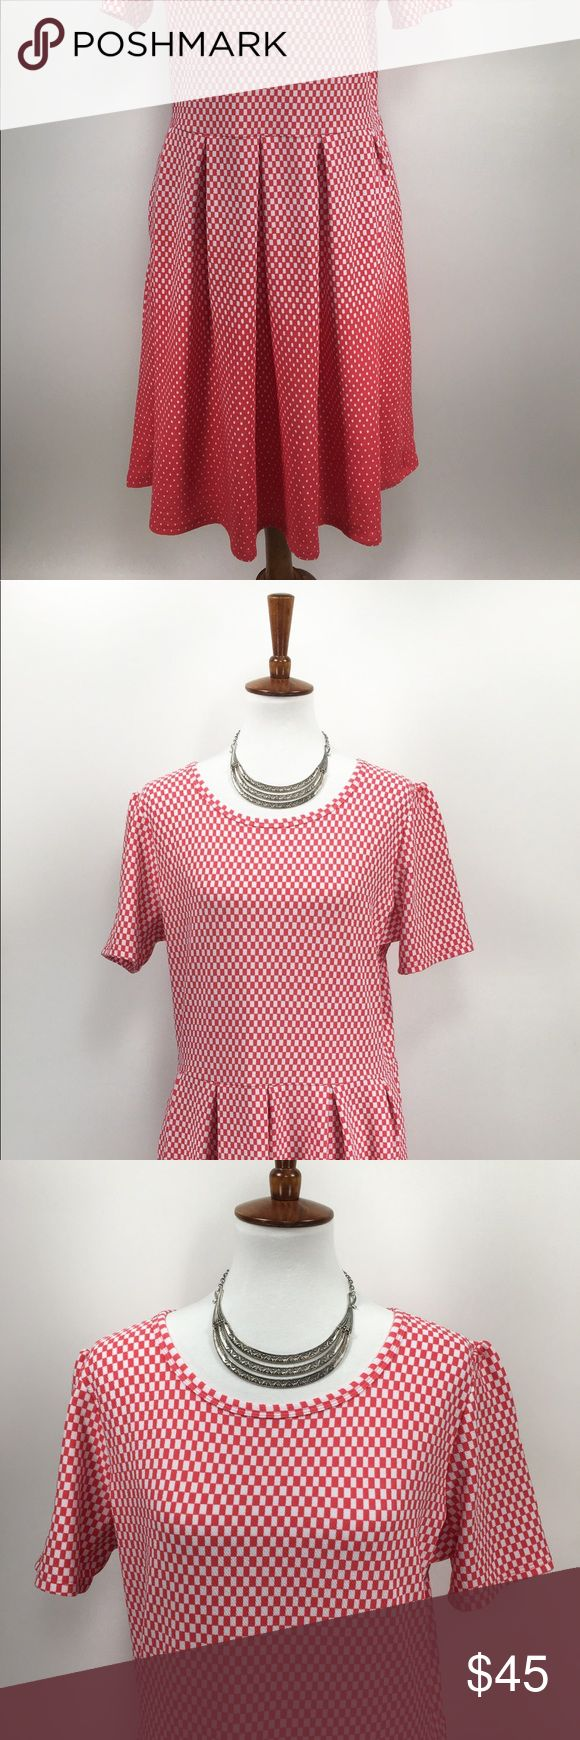 Lularoe Amelia Dress Checker Polka Dot Orange LulaRoe Amelia Dress  Size 3XL Color: Coral orange and White No Stains or Rips 🌸BUNDLE AND SAVE  🌸NO TRADES - PRICE IS FIRM 🌸FEEL FREE TO ASK QUESTIONS 🌸I DO NOT MODEL Custom Sku D22 LuLaRoe Dresses